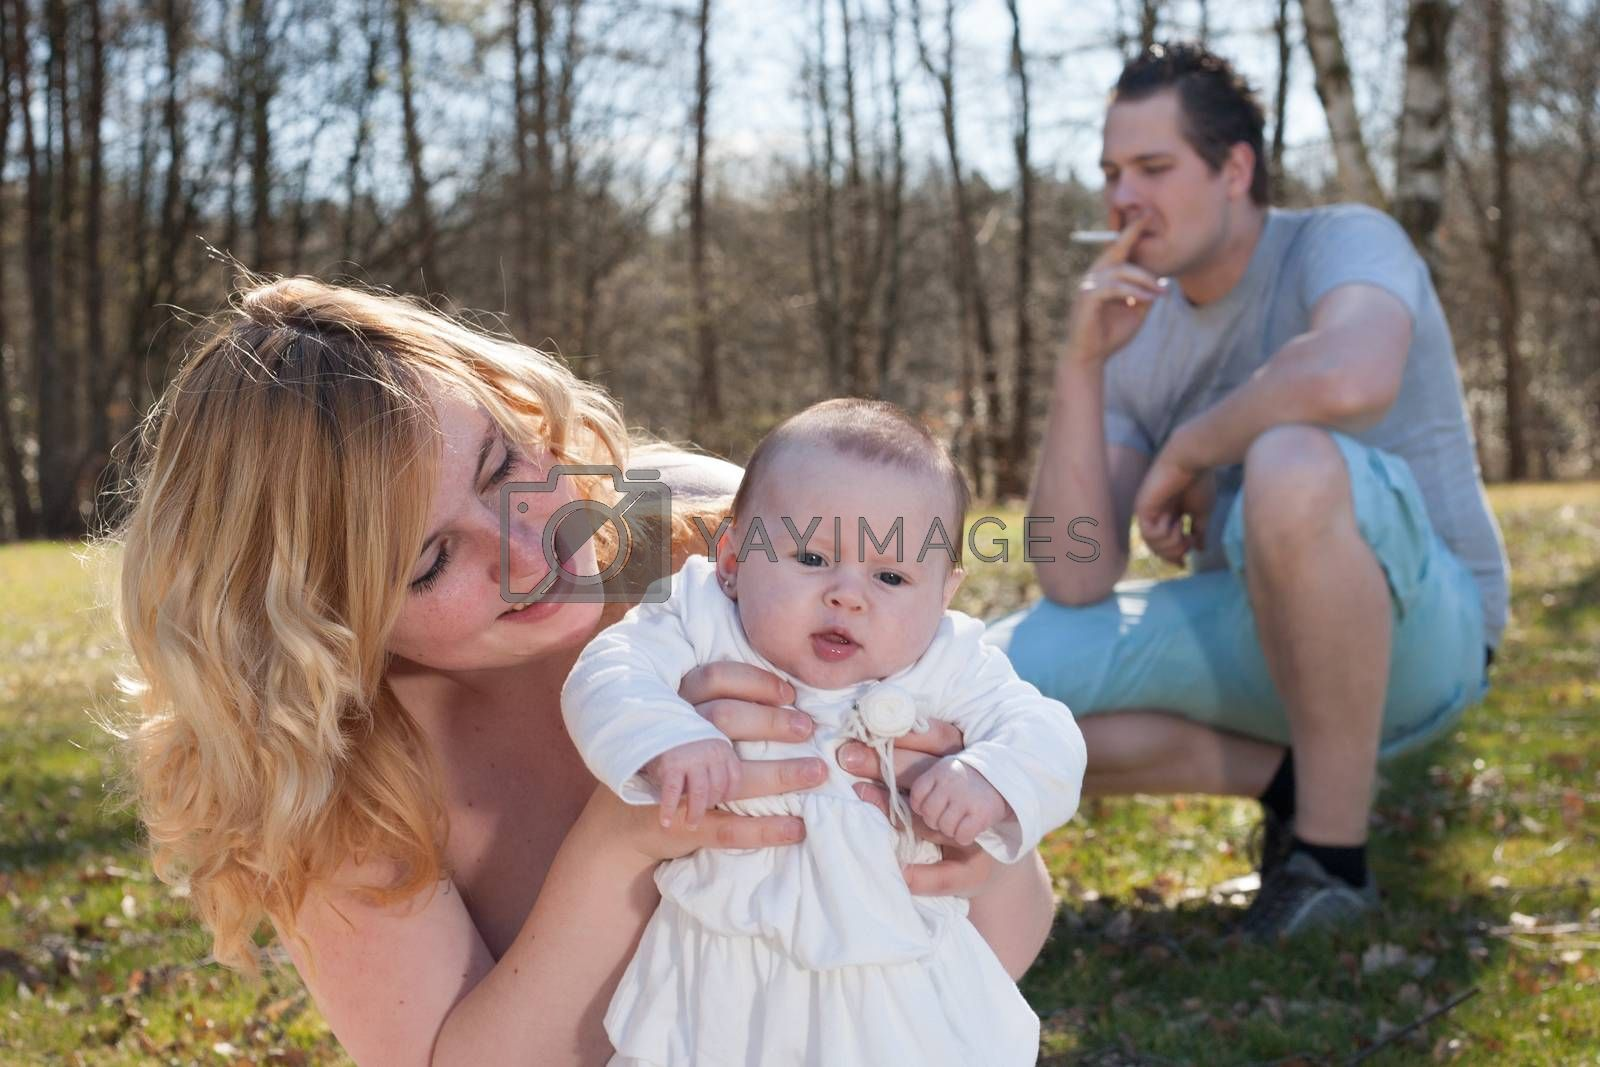 Young father is smoking while its unhealthy for his family. Distance between father and family